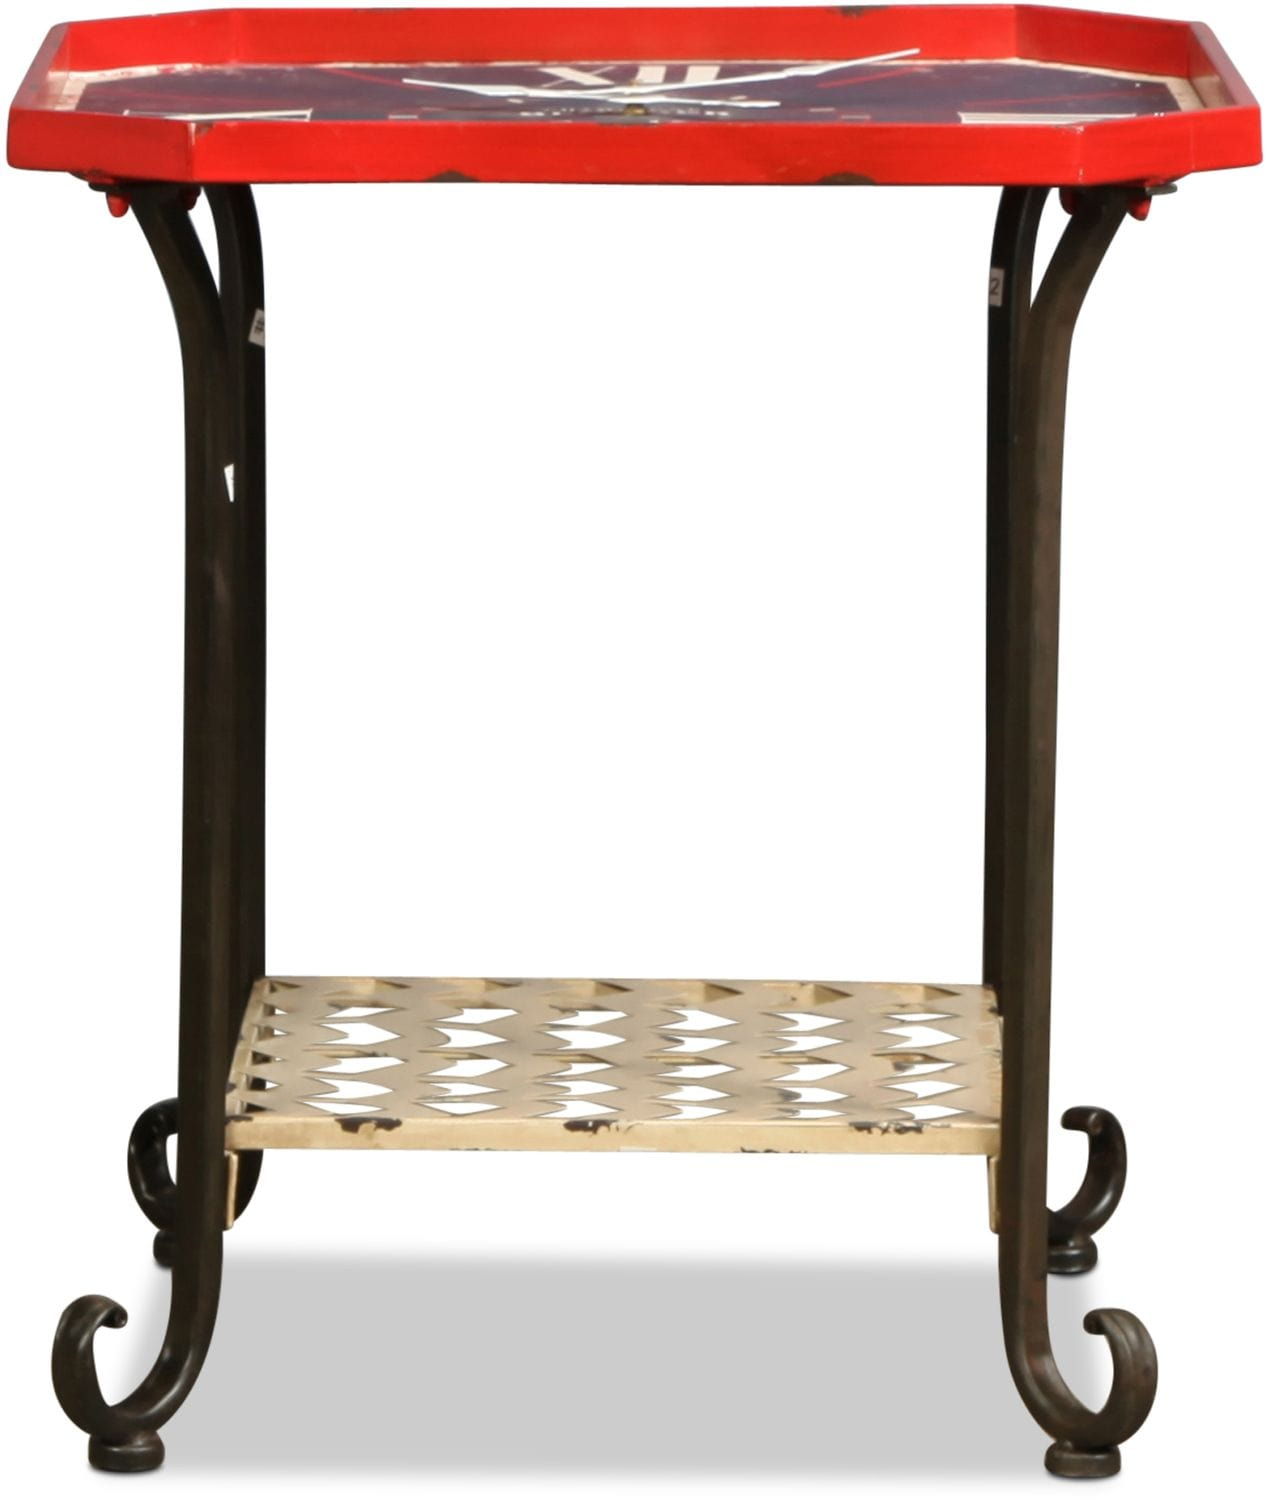 Clock Accent Table - Red and Black